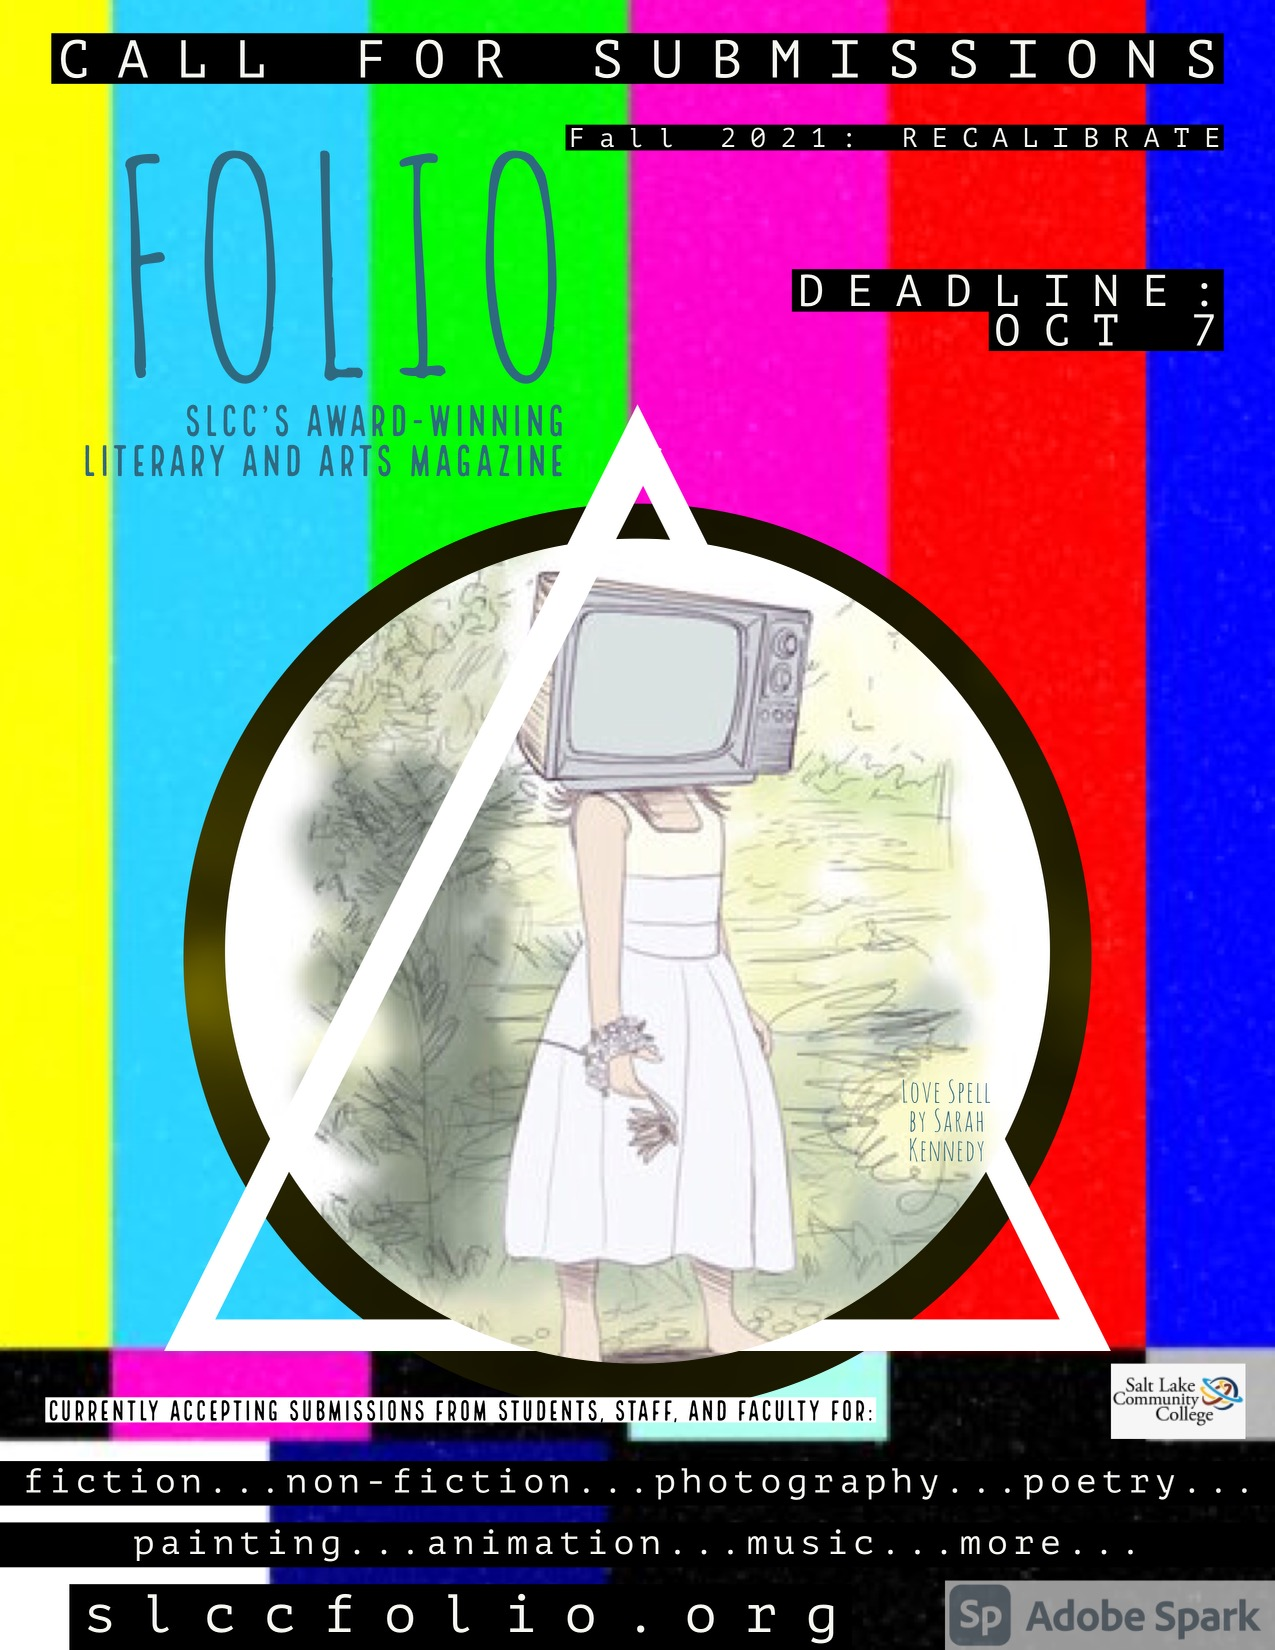 Promotional poster for Folio submissions